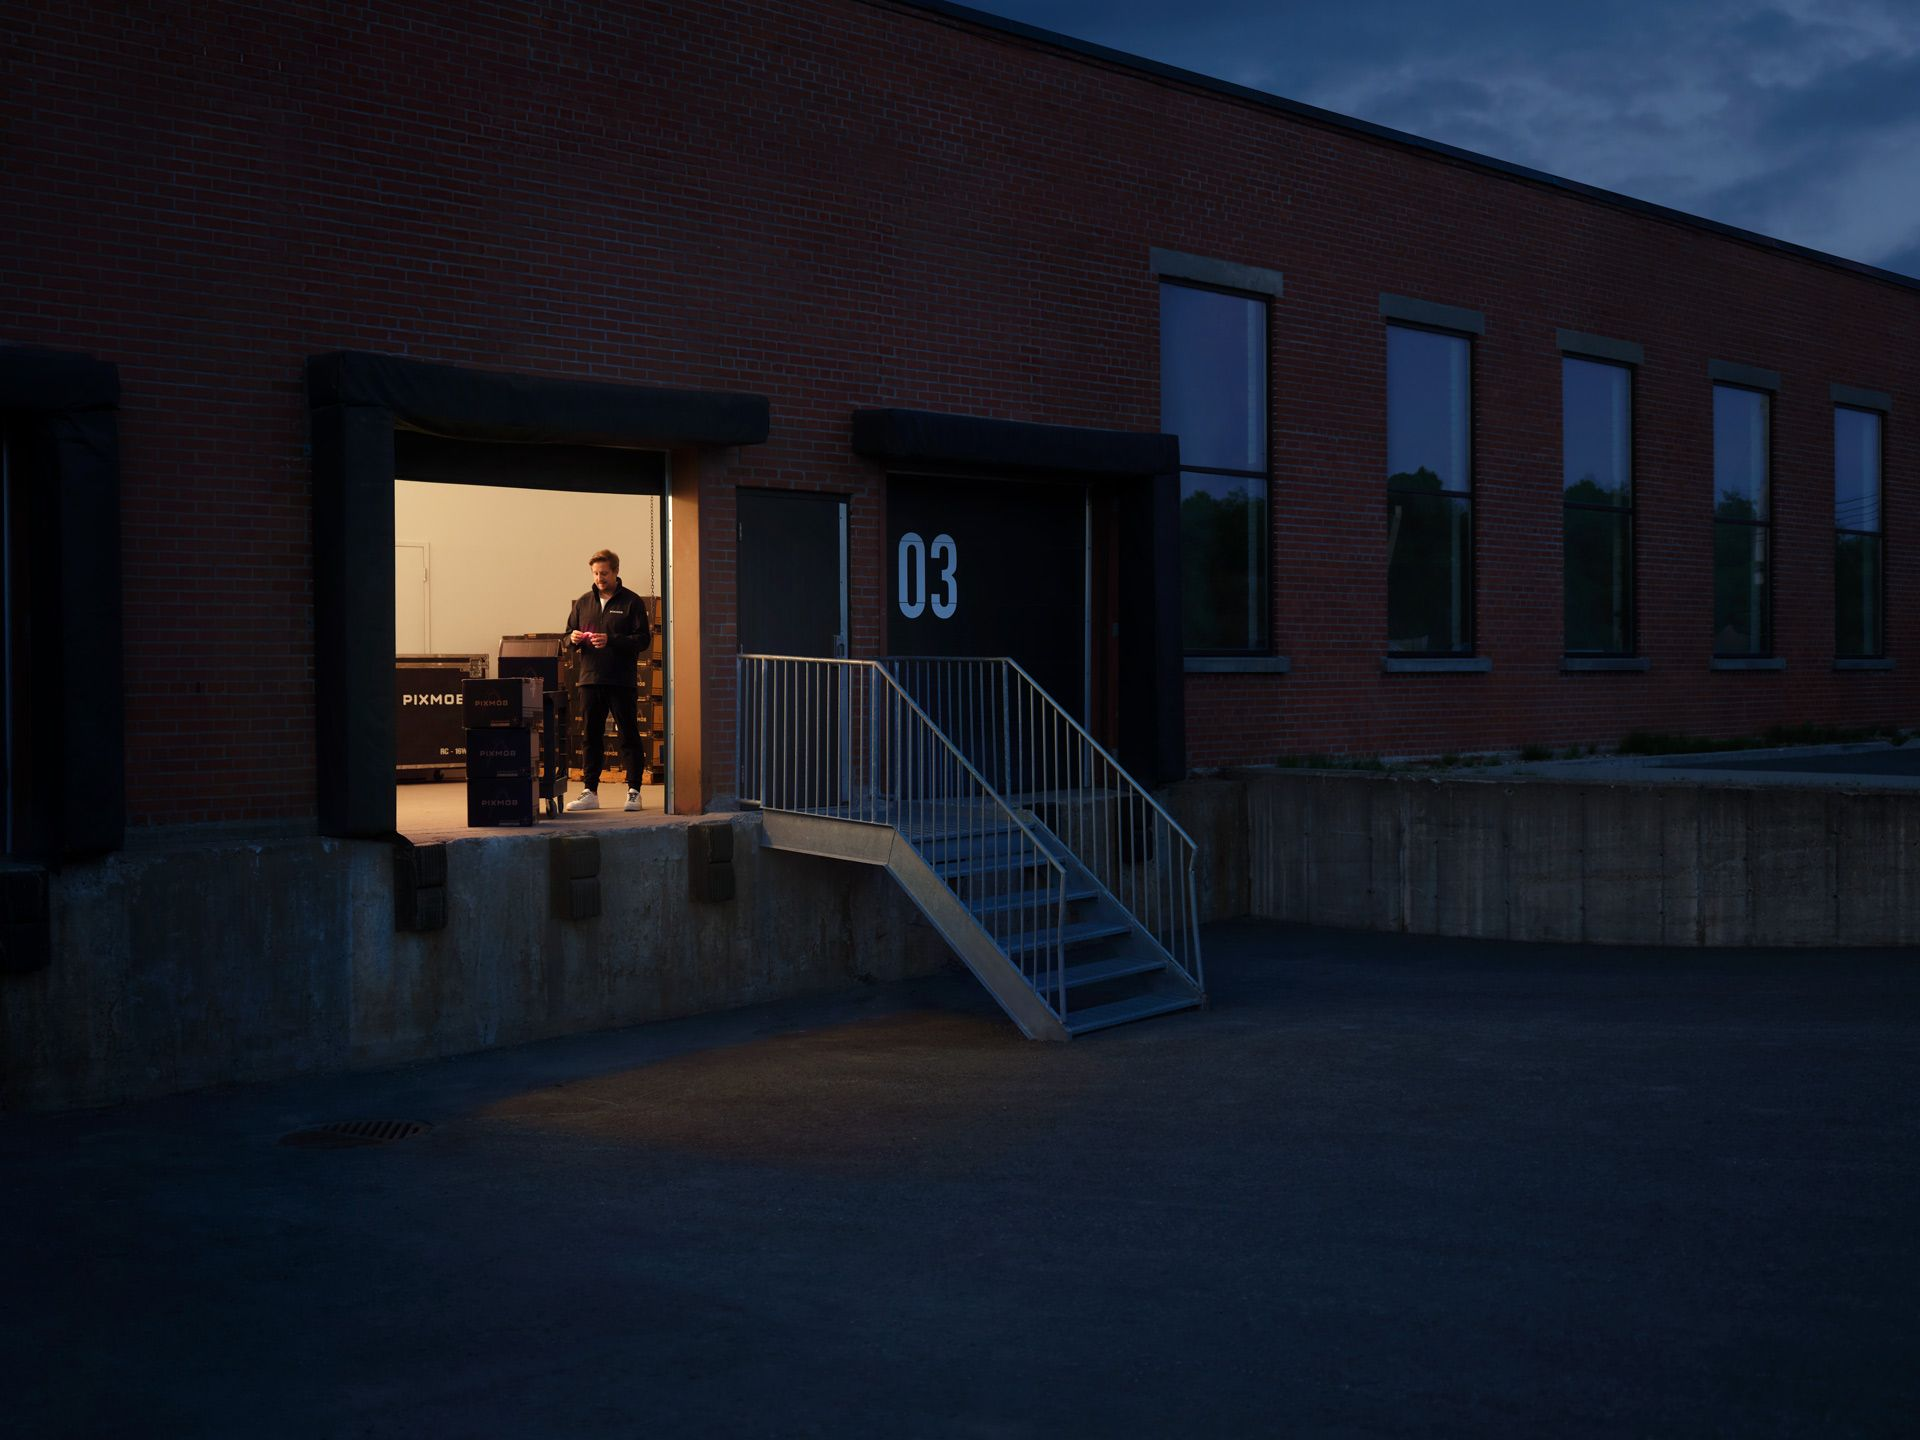 view inside Pixmob loading dock at night with one person working inside photographed by Simon Duhamel for PME MTL in collaboration with K72